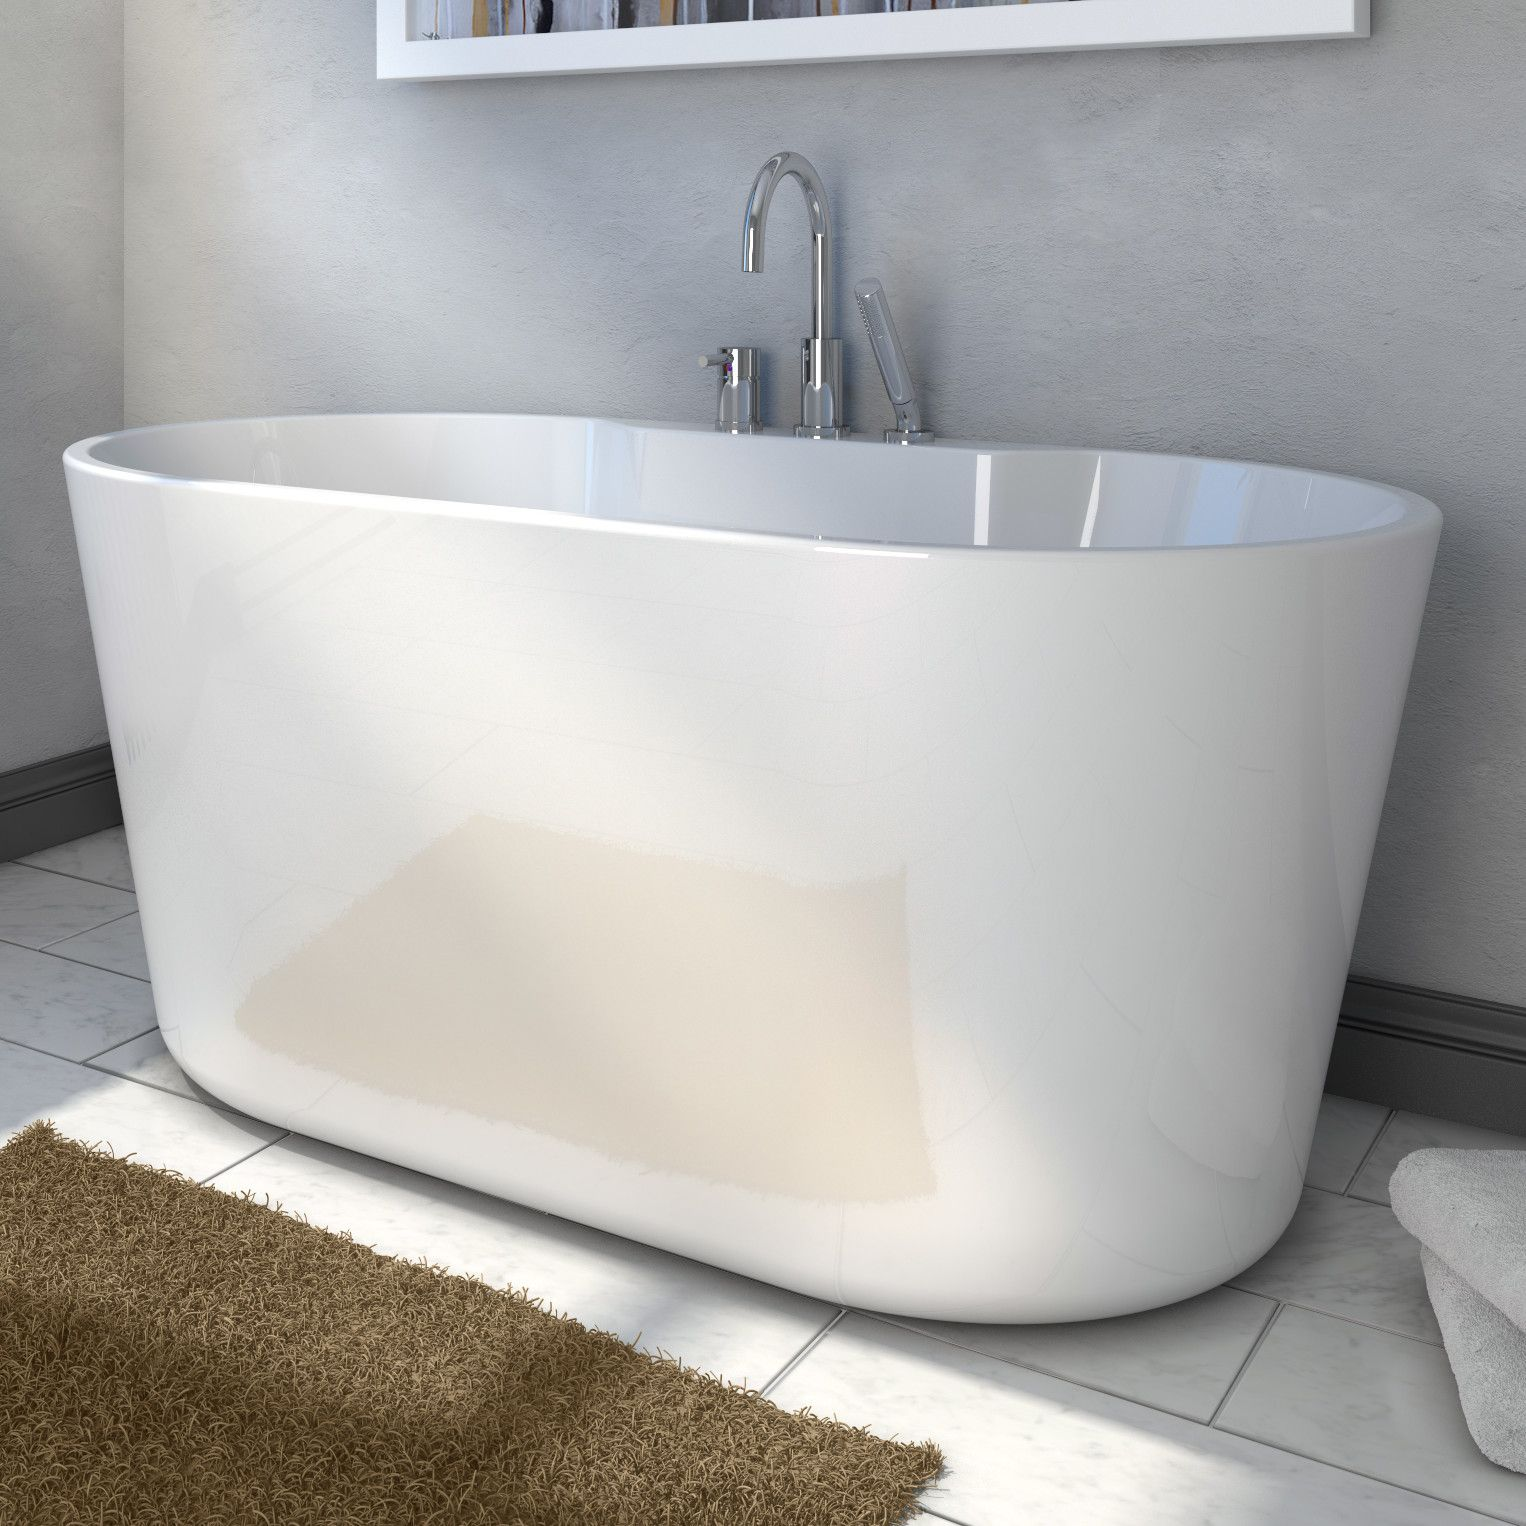 Sophia 56 Inch Freestanding Double Ended Cast Stone Bathtub Stone Bathtub Small Bathtub Free Standing Bath Tub